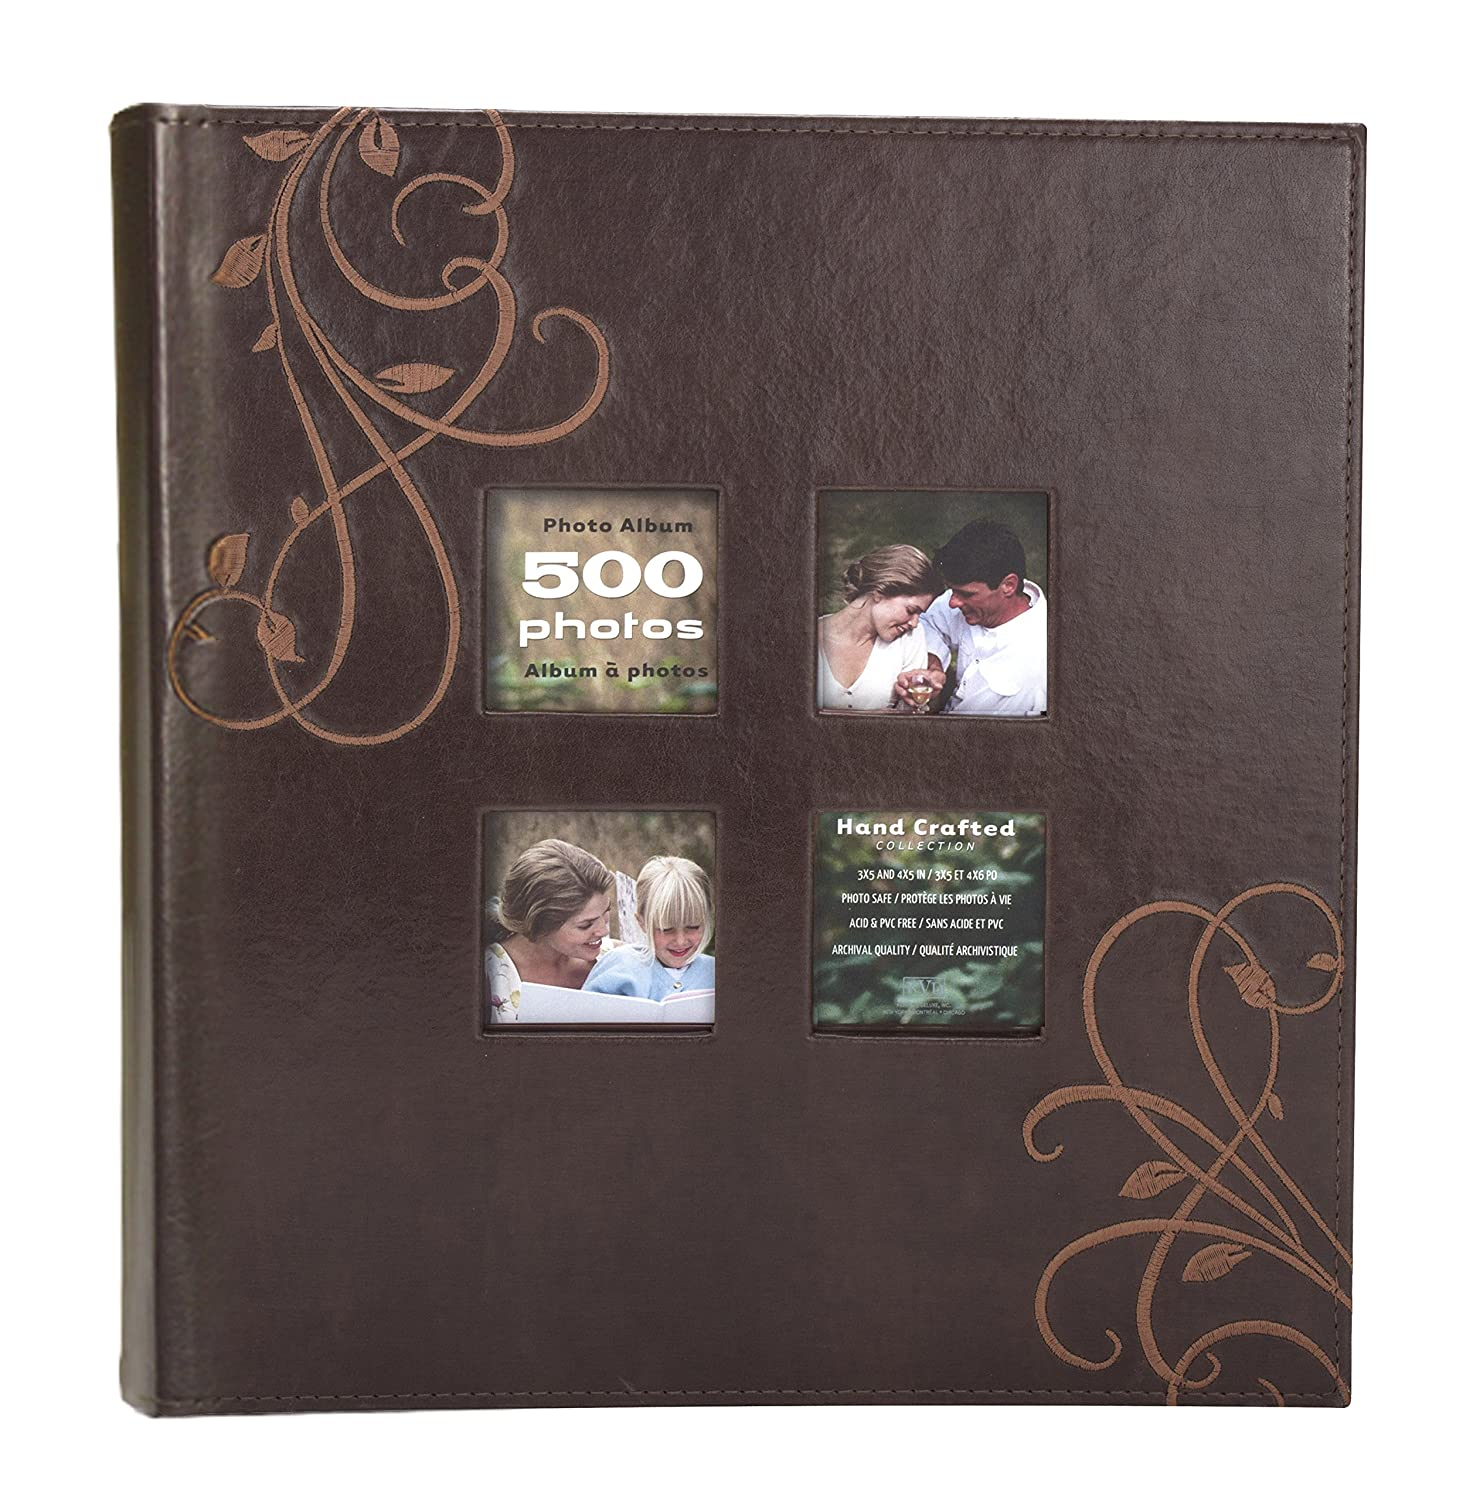 Kleer-Vu Photo Embroidery Leather Collection, Holds 500 4x6 inches Photos, 5 Per Page - Brown. Kleer-Vu Deluxe Albums Inc. 90738